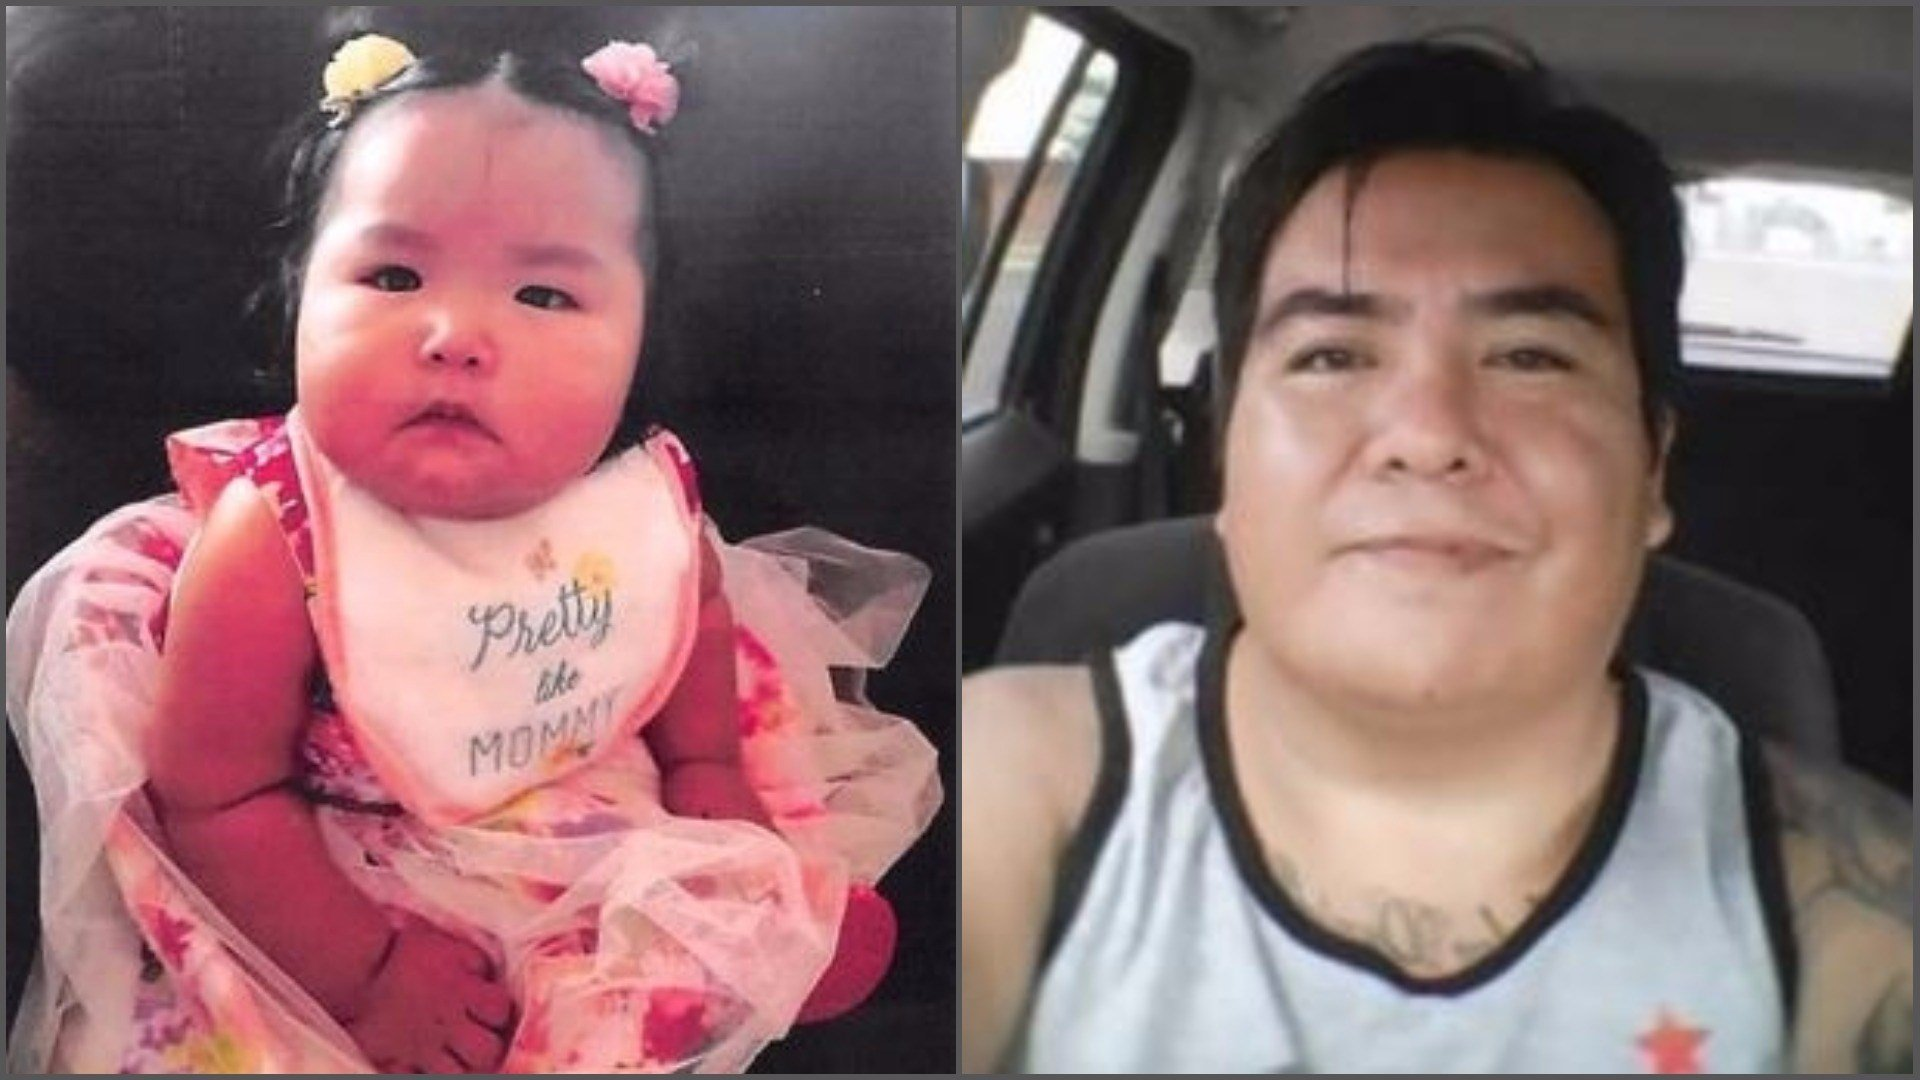 Police believe Delilah Nelson was taken by her father, Shawn Nelson. (Source: Navajo Police Department)